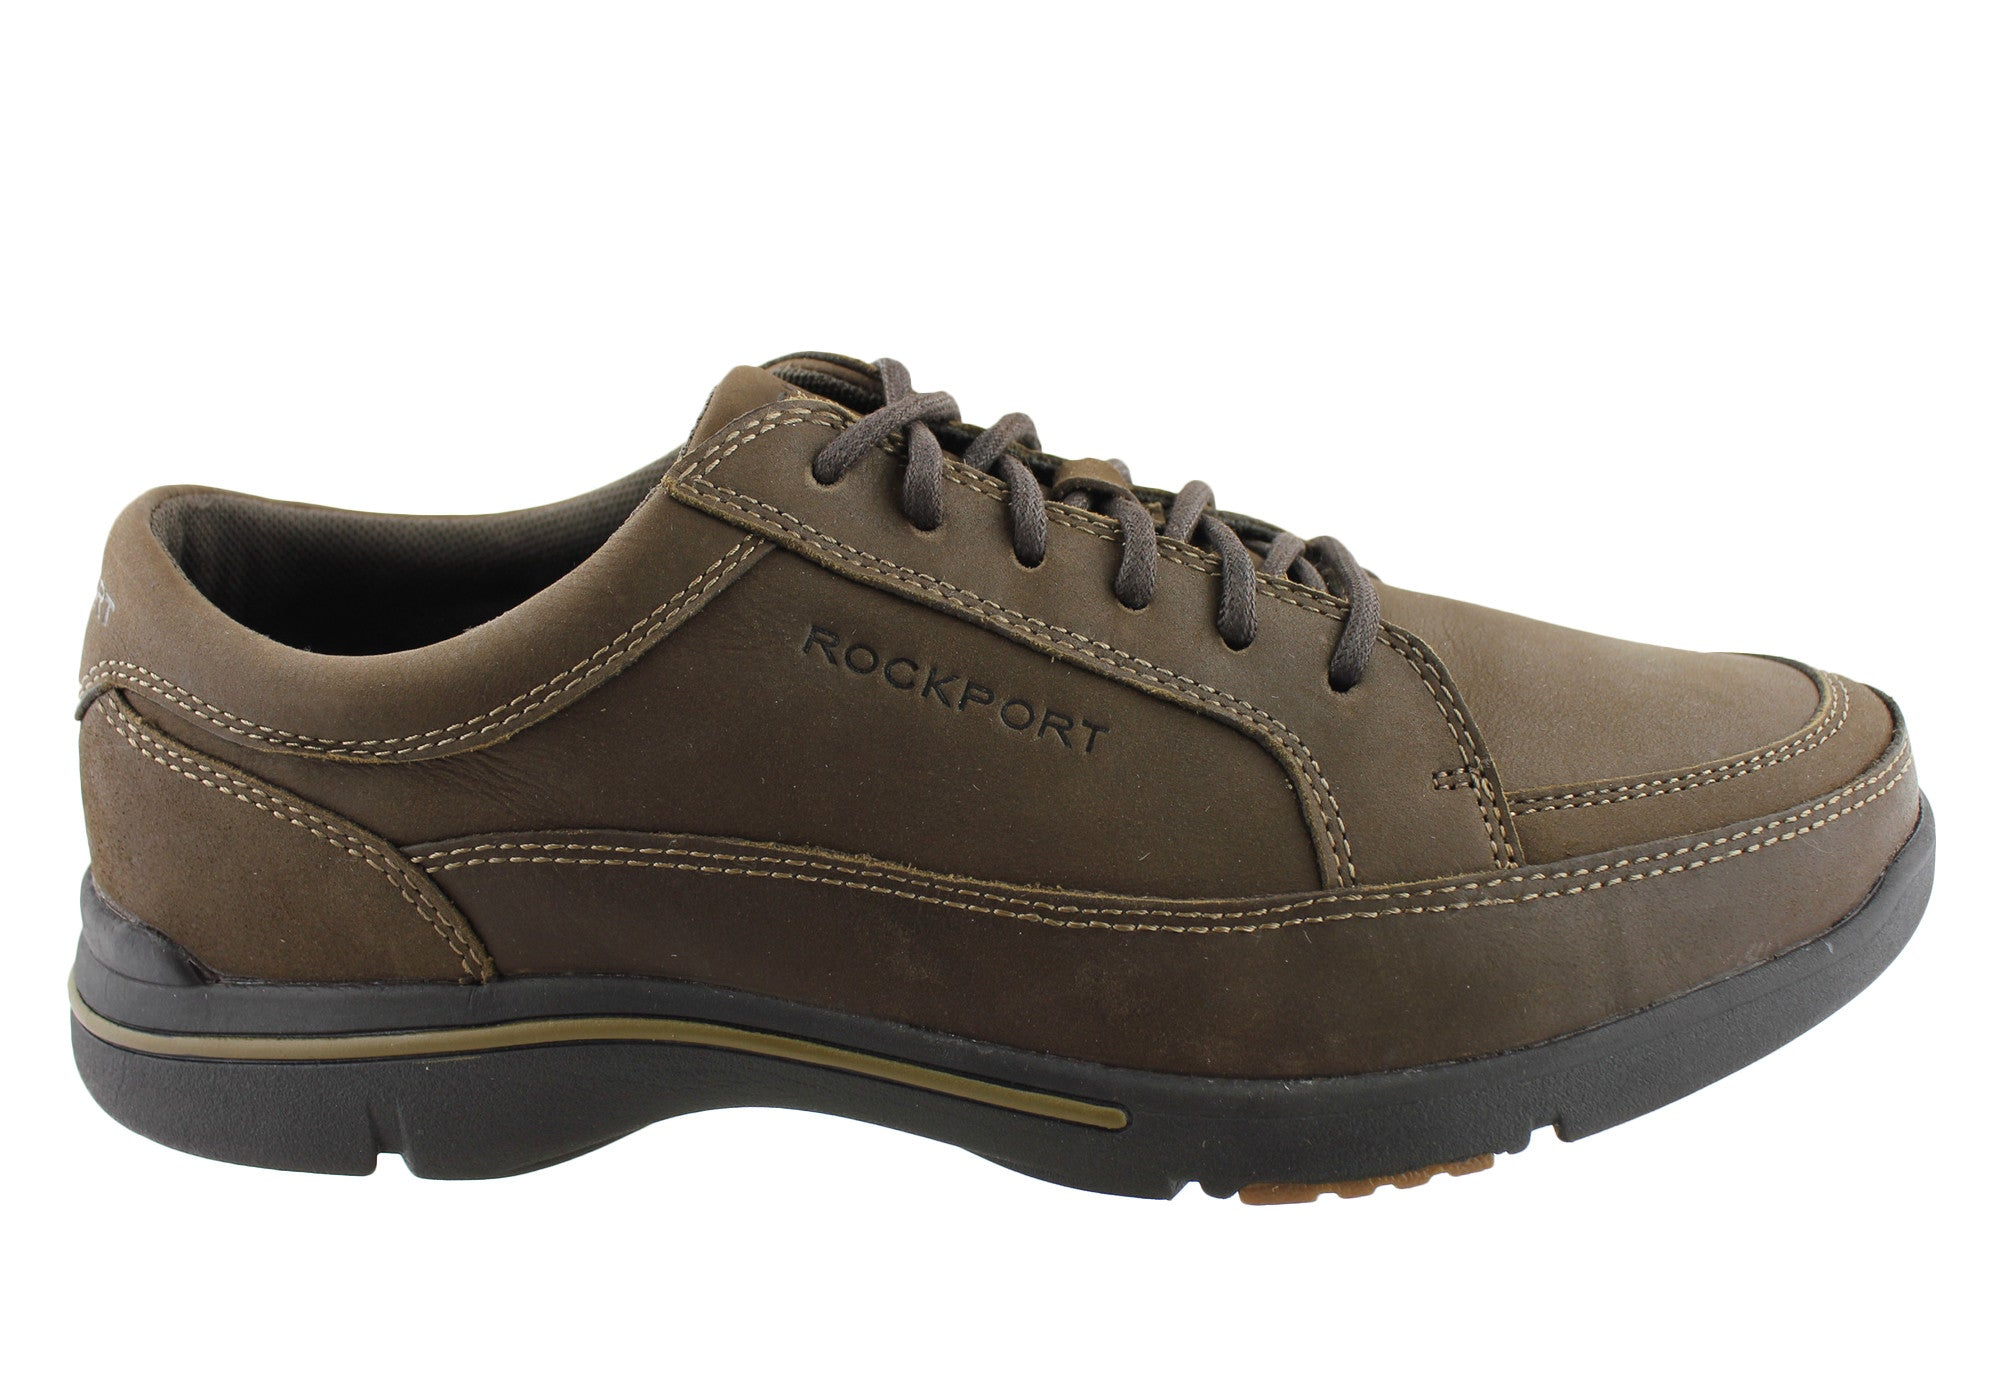 rockport cityplay mudguard mens wide fitting comfortable